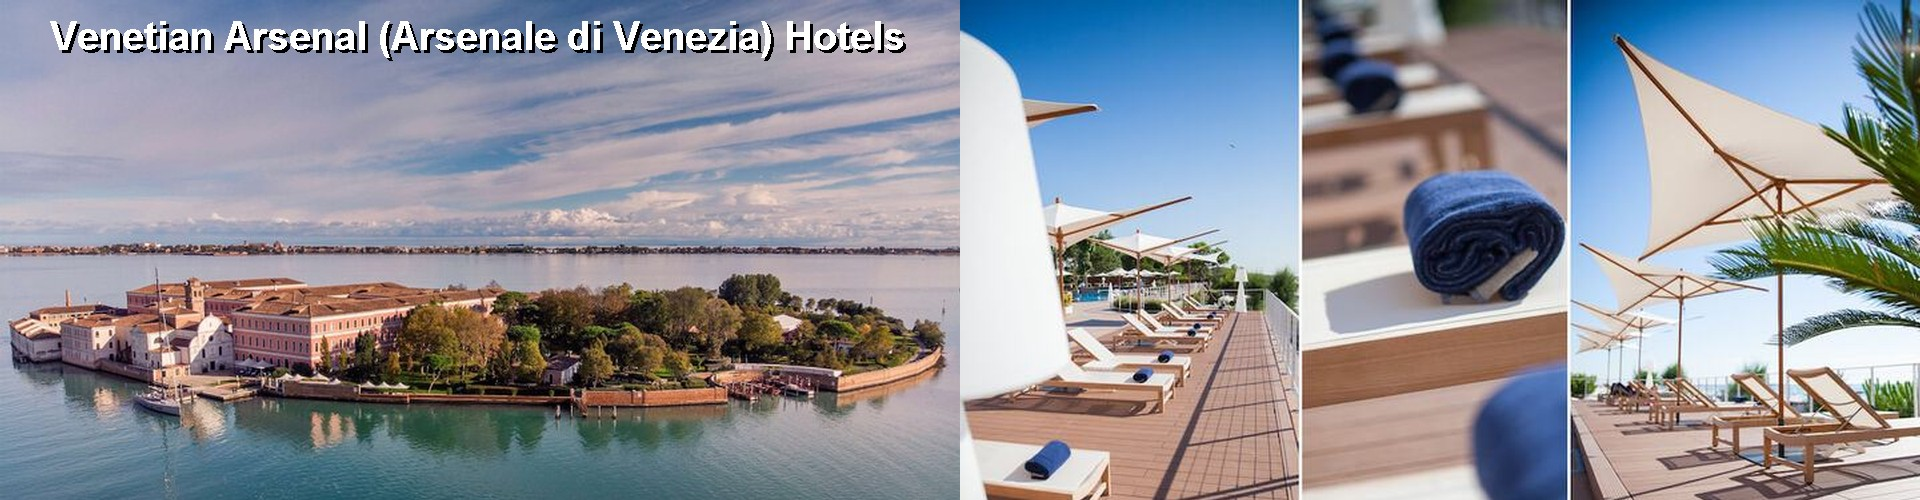 5 Best Hotels near Venetian Arsenal (Arsenale di Venezia)